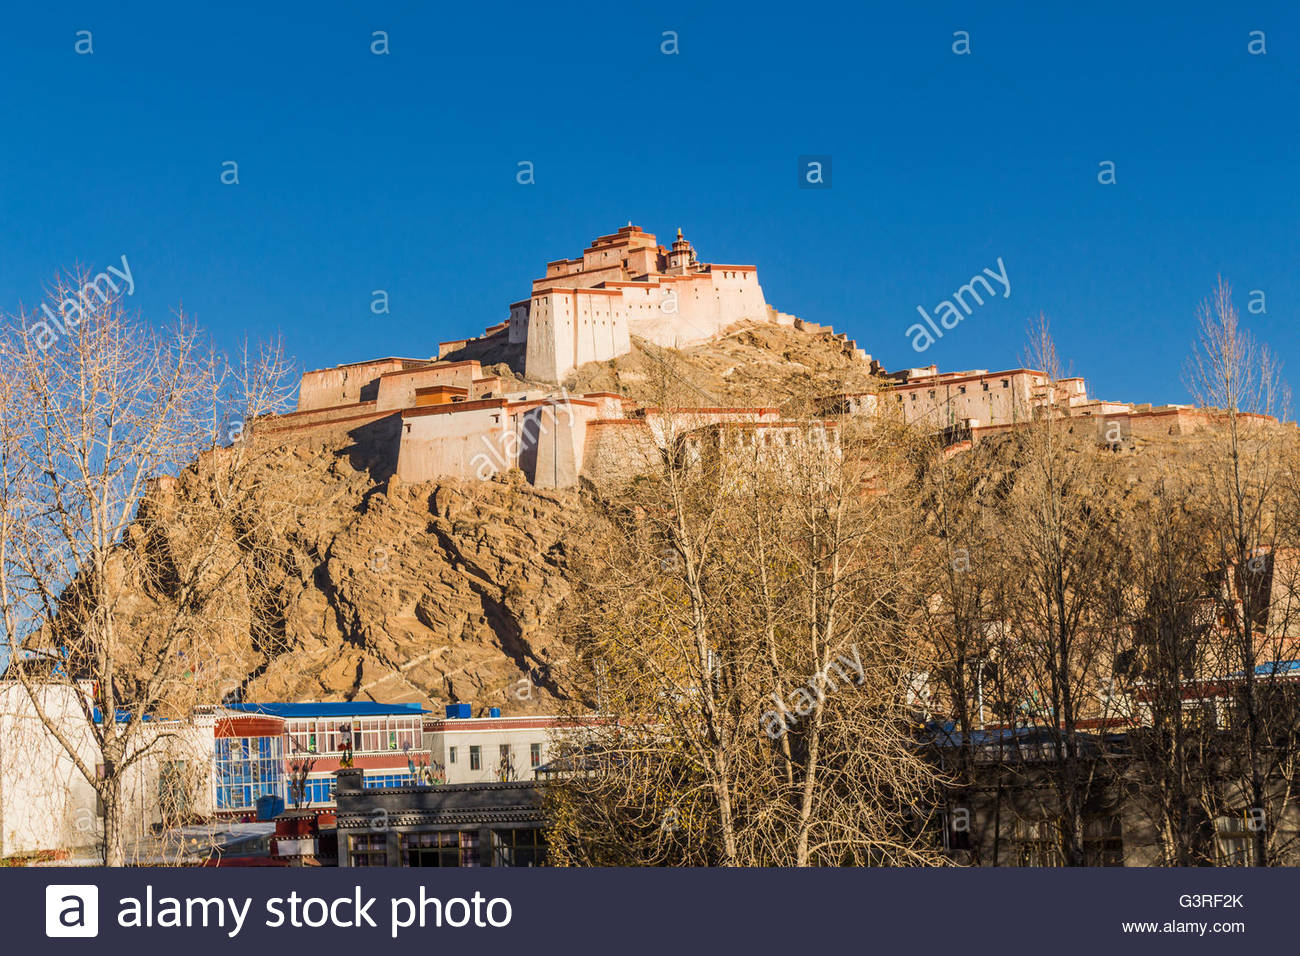 Image of the Pelchor Chode Temple taken from a Gyanstse Side Street - Stock Image